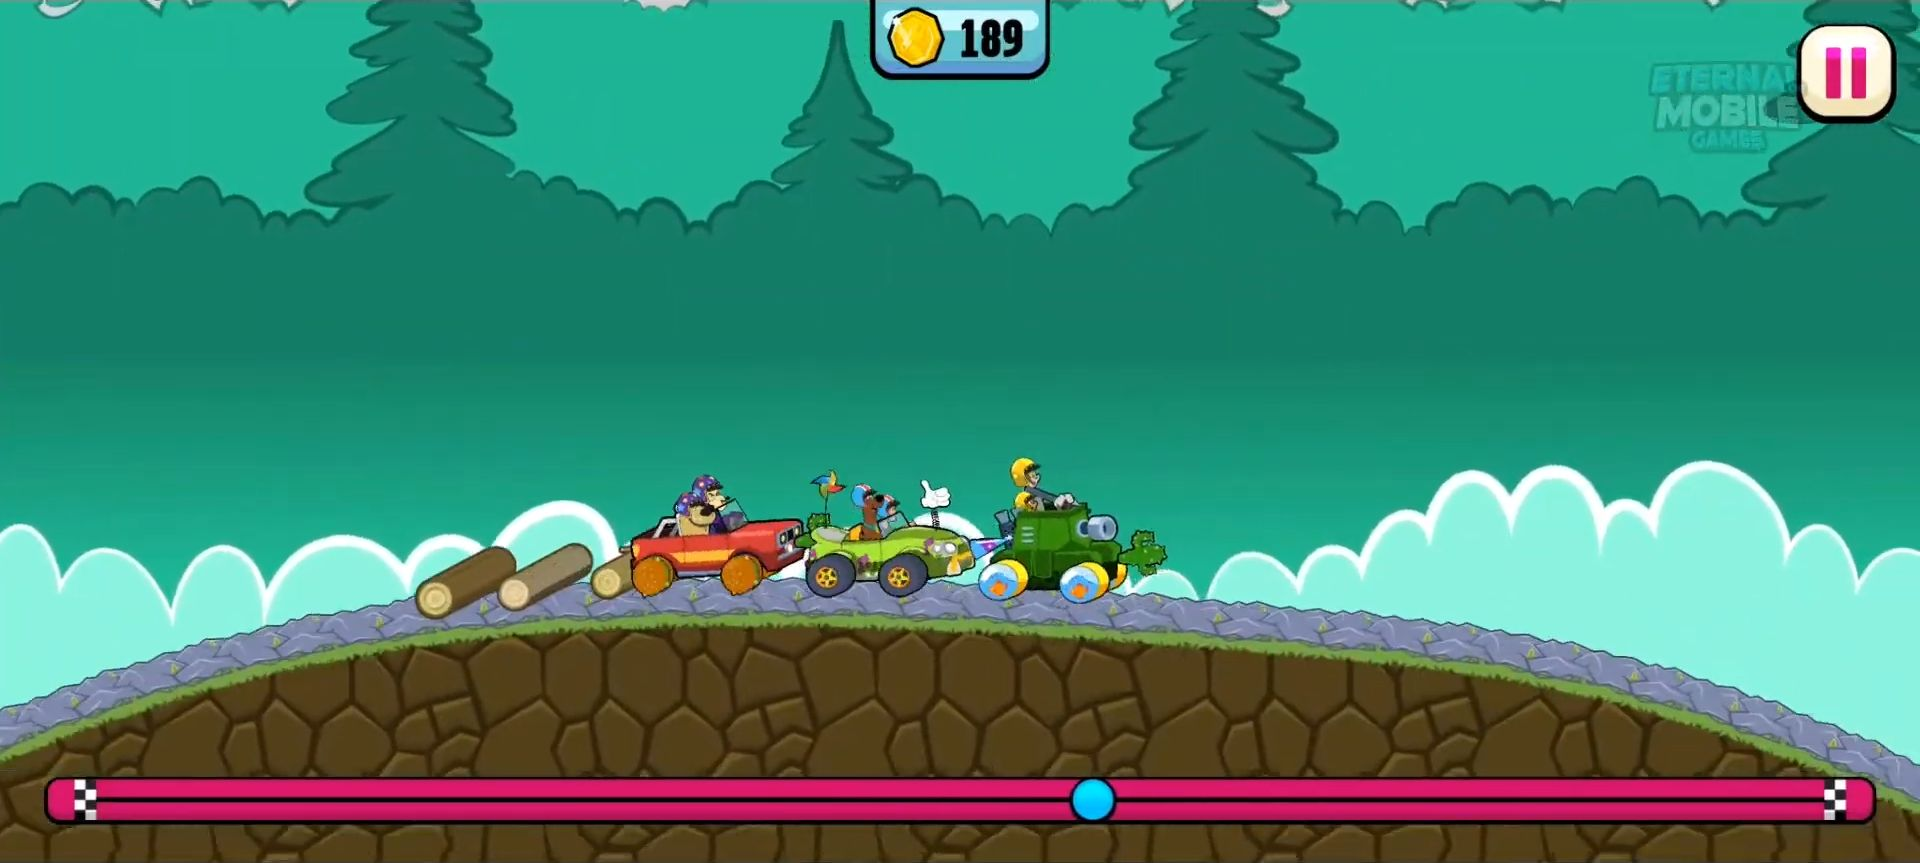 Boomerang Make and Race 2 - Cartoon Racing Game für Android